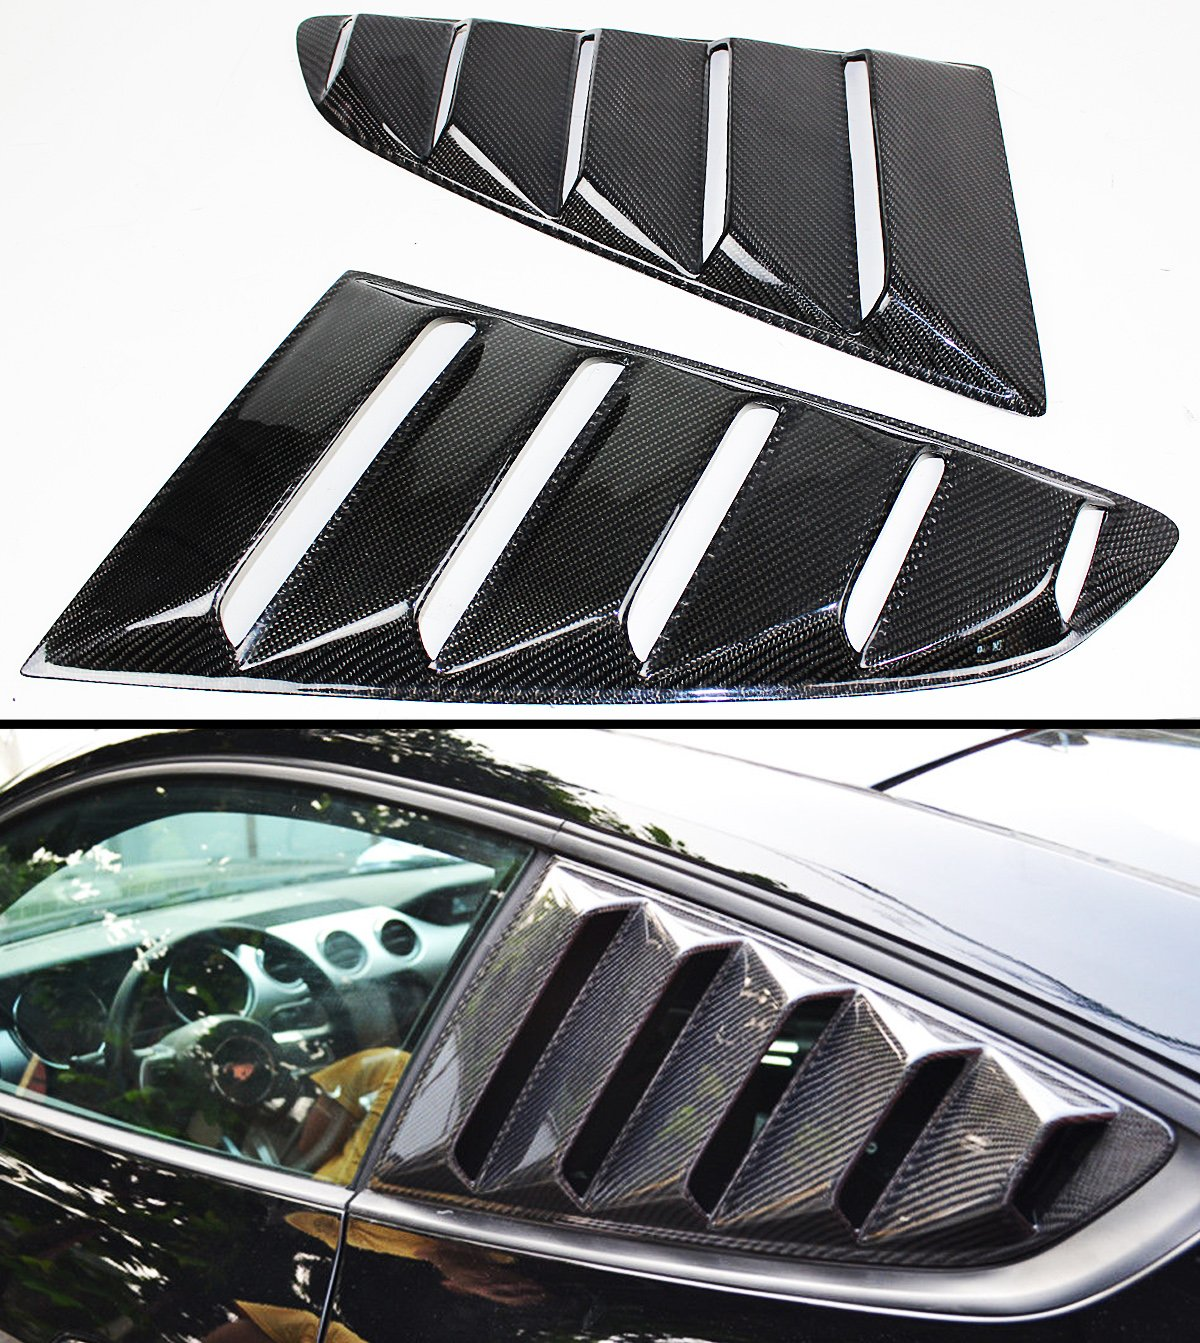 For 2015-2017 Ford Mustang GT S550 Carbon Fiber Side Vent Window Quarter Scoop Louver Covers Pair Cuztom Tuning